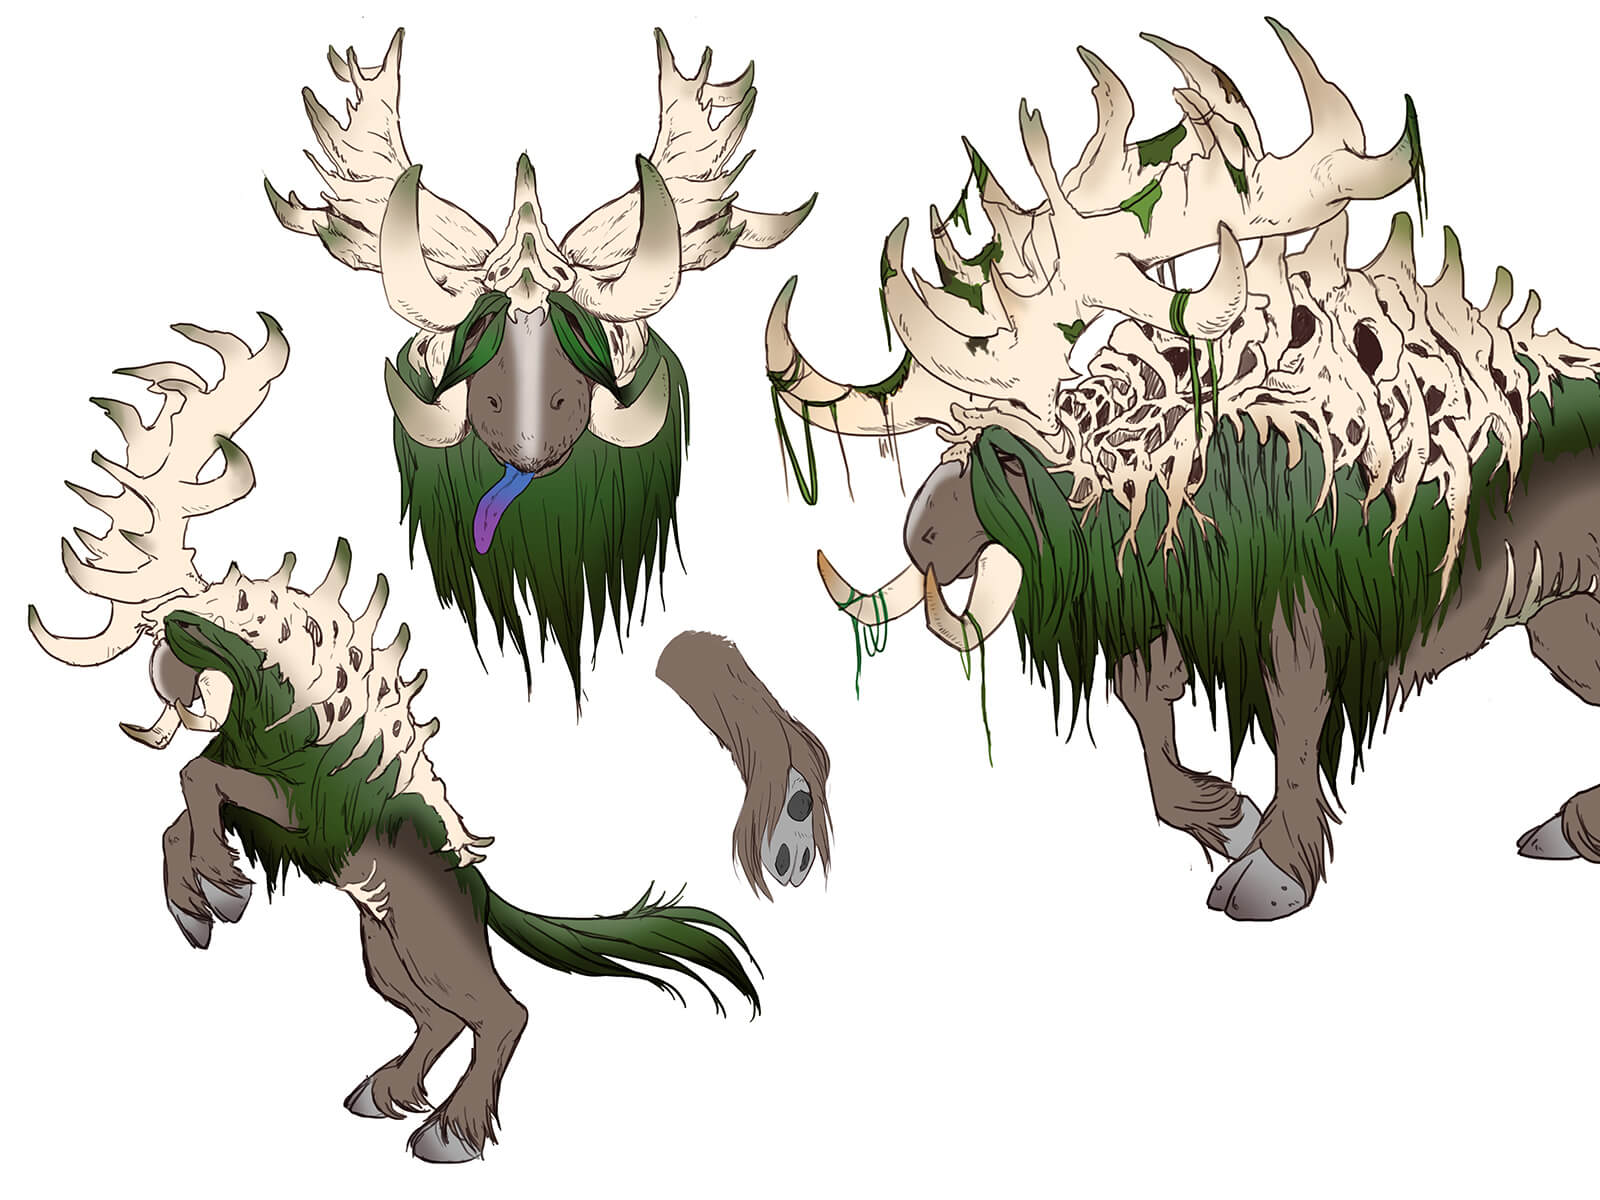 Sketches of a tusked, elk-like beast with mossy green fur topped with expansive skeletal antler structures along its back.